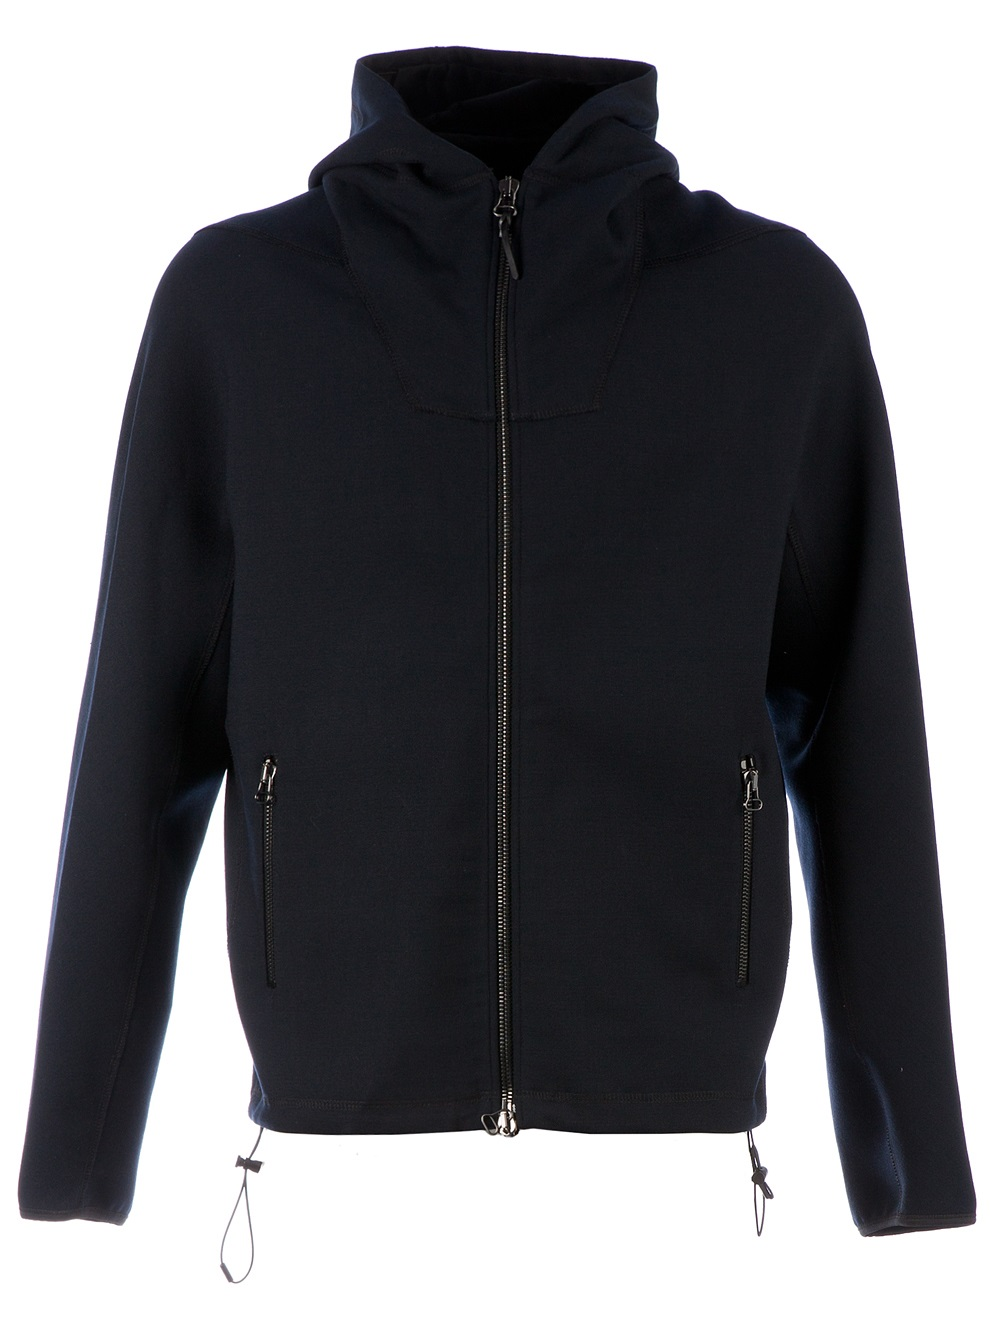 Lyst - Lanvin Drawstring Hoodie in Black for Men